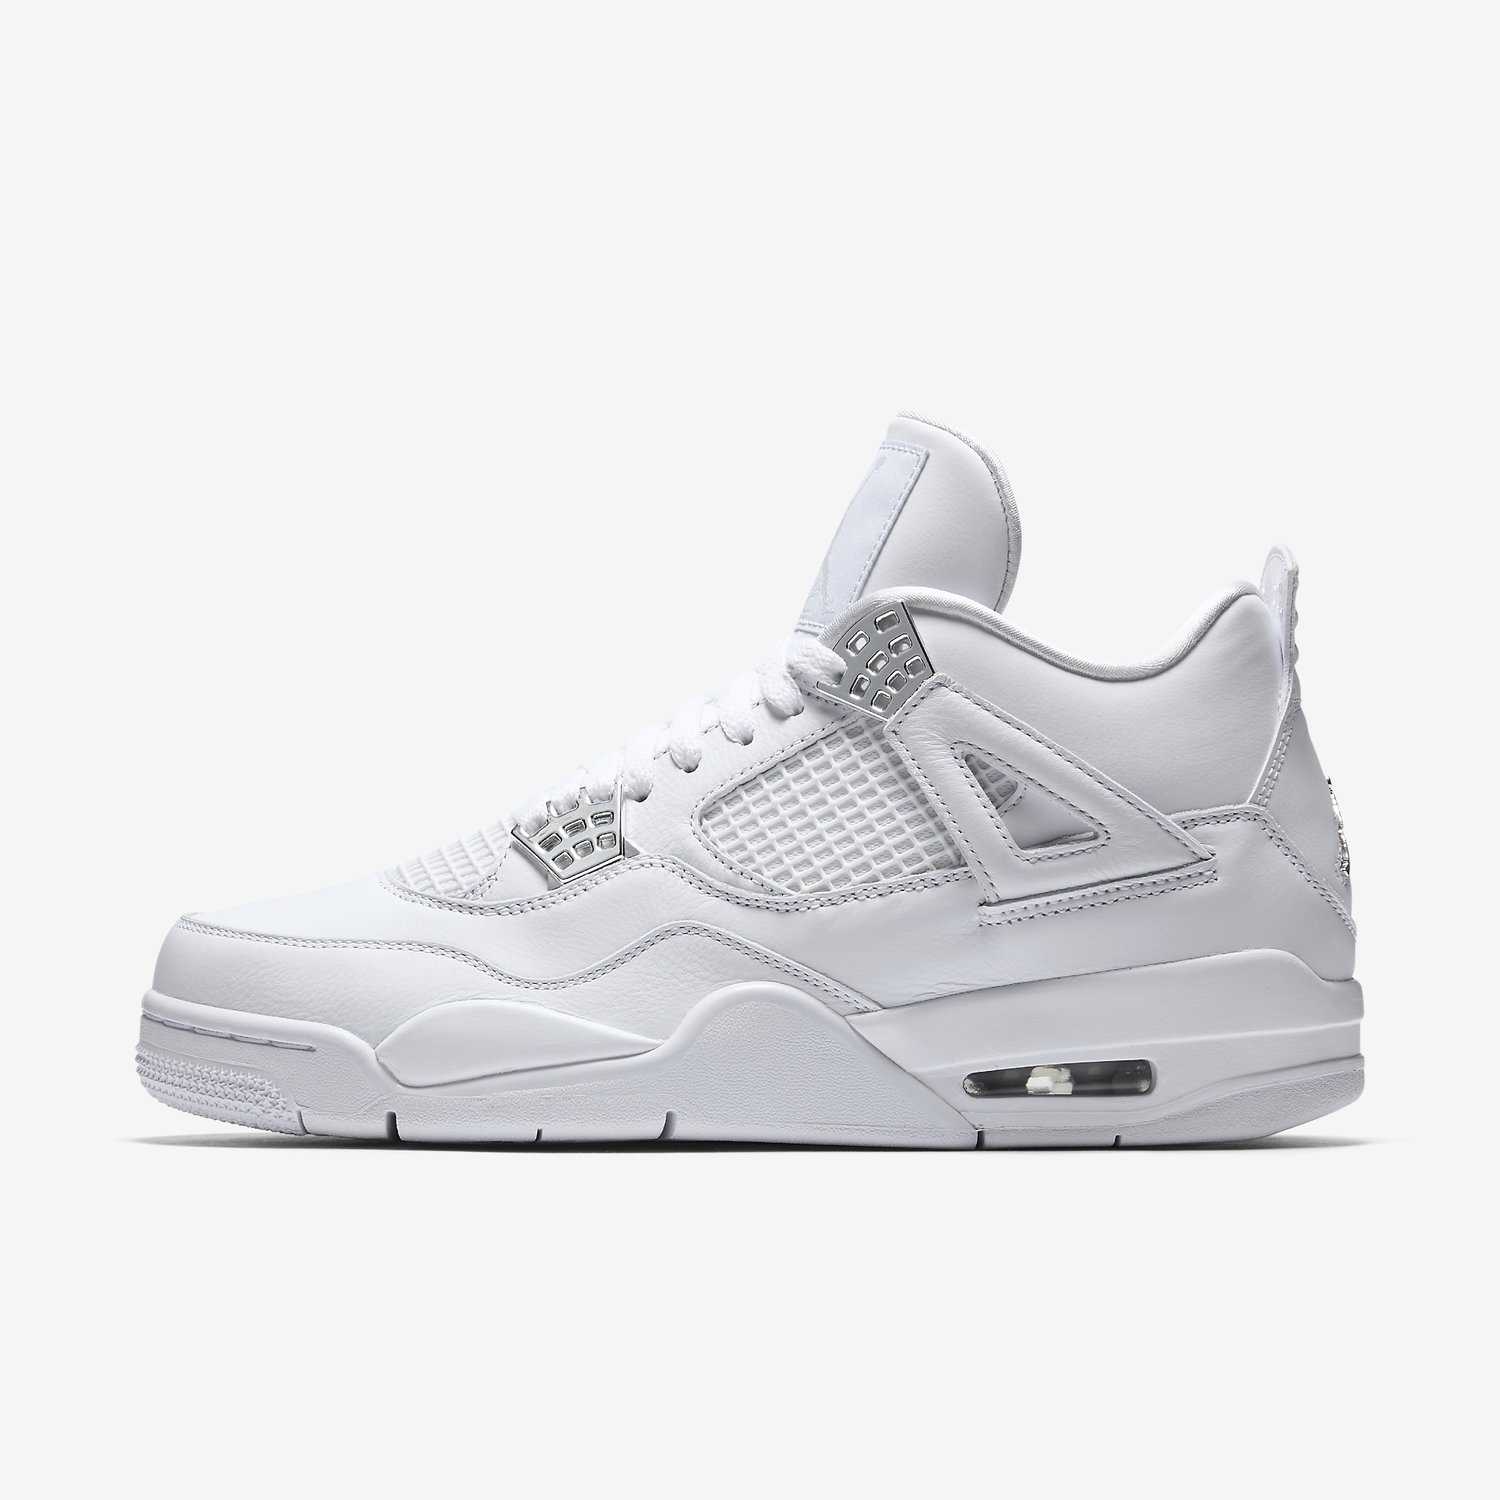 air jordan 4 retro blancas